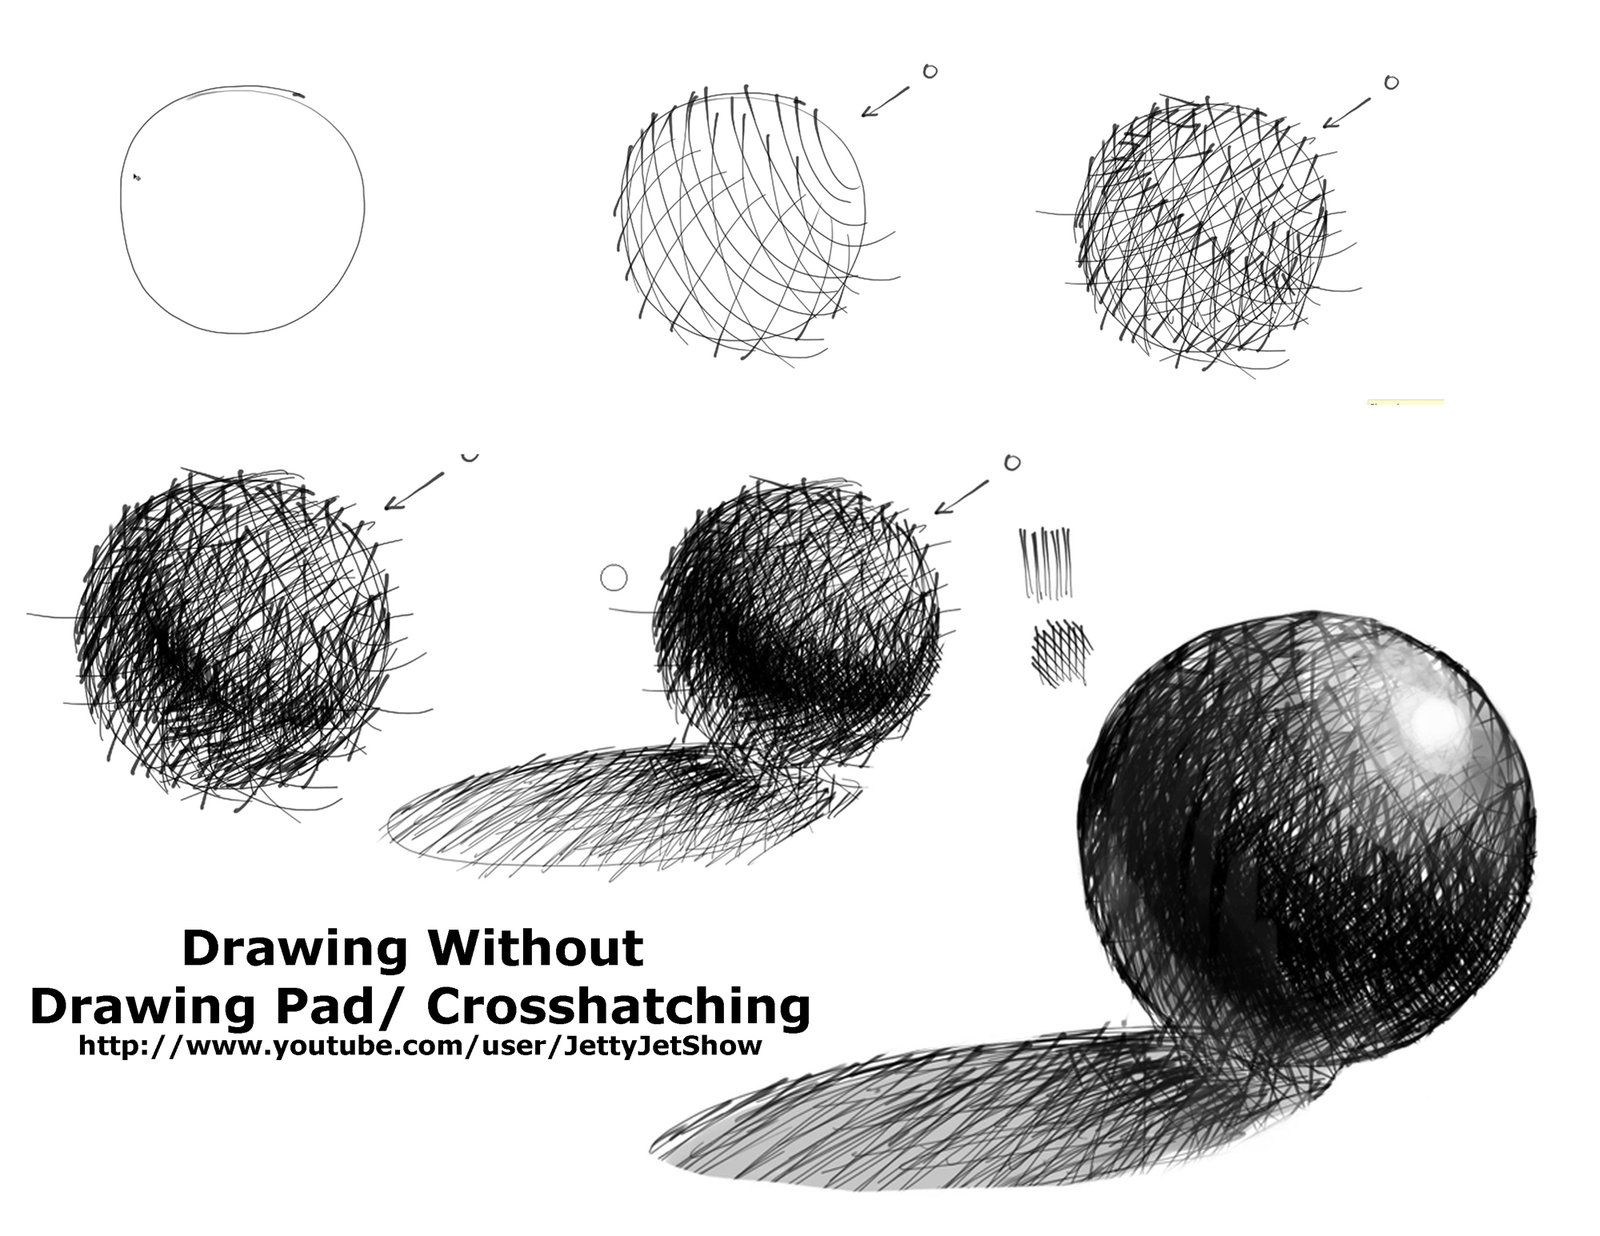 Chiaroscuro Shading On A Sphere In Cross Hatch Technique